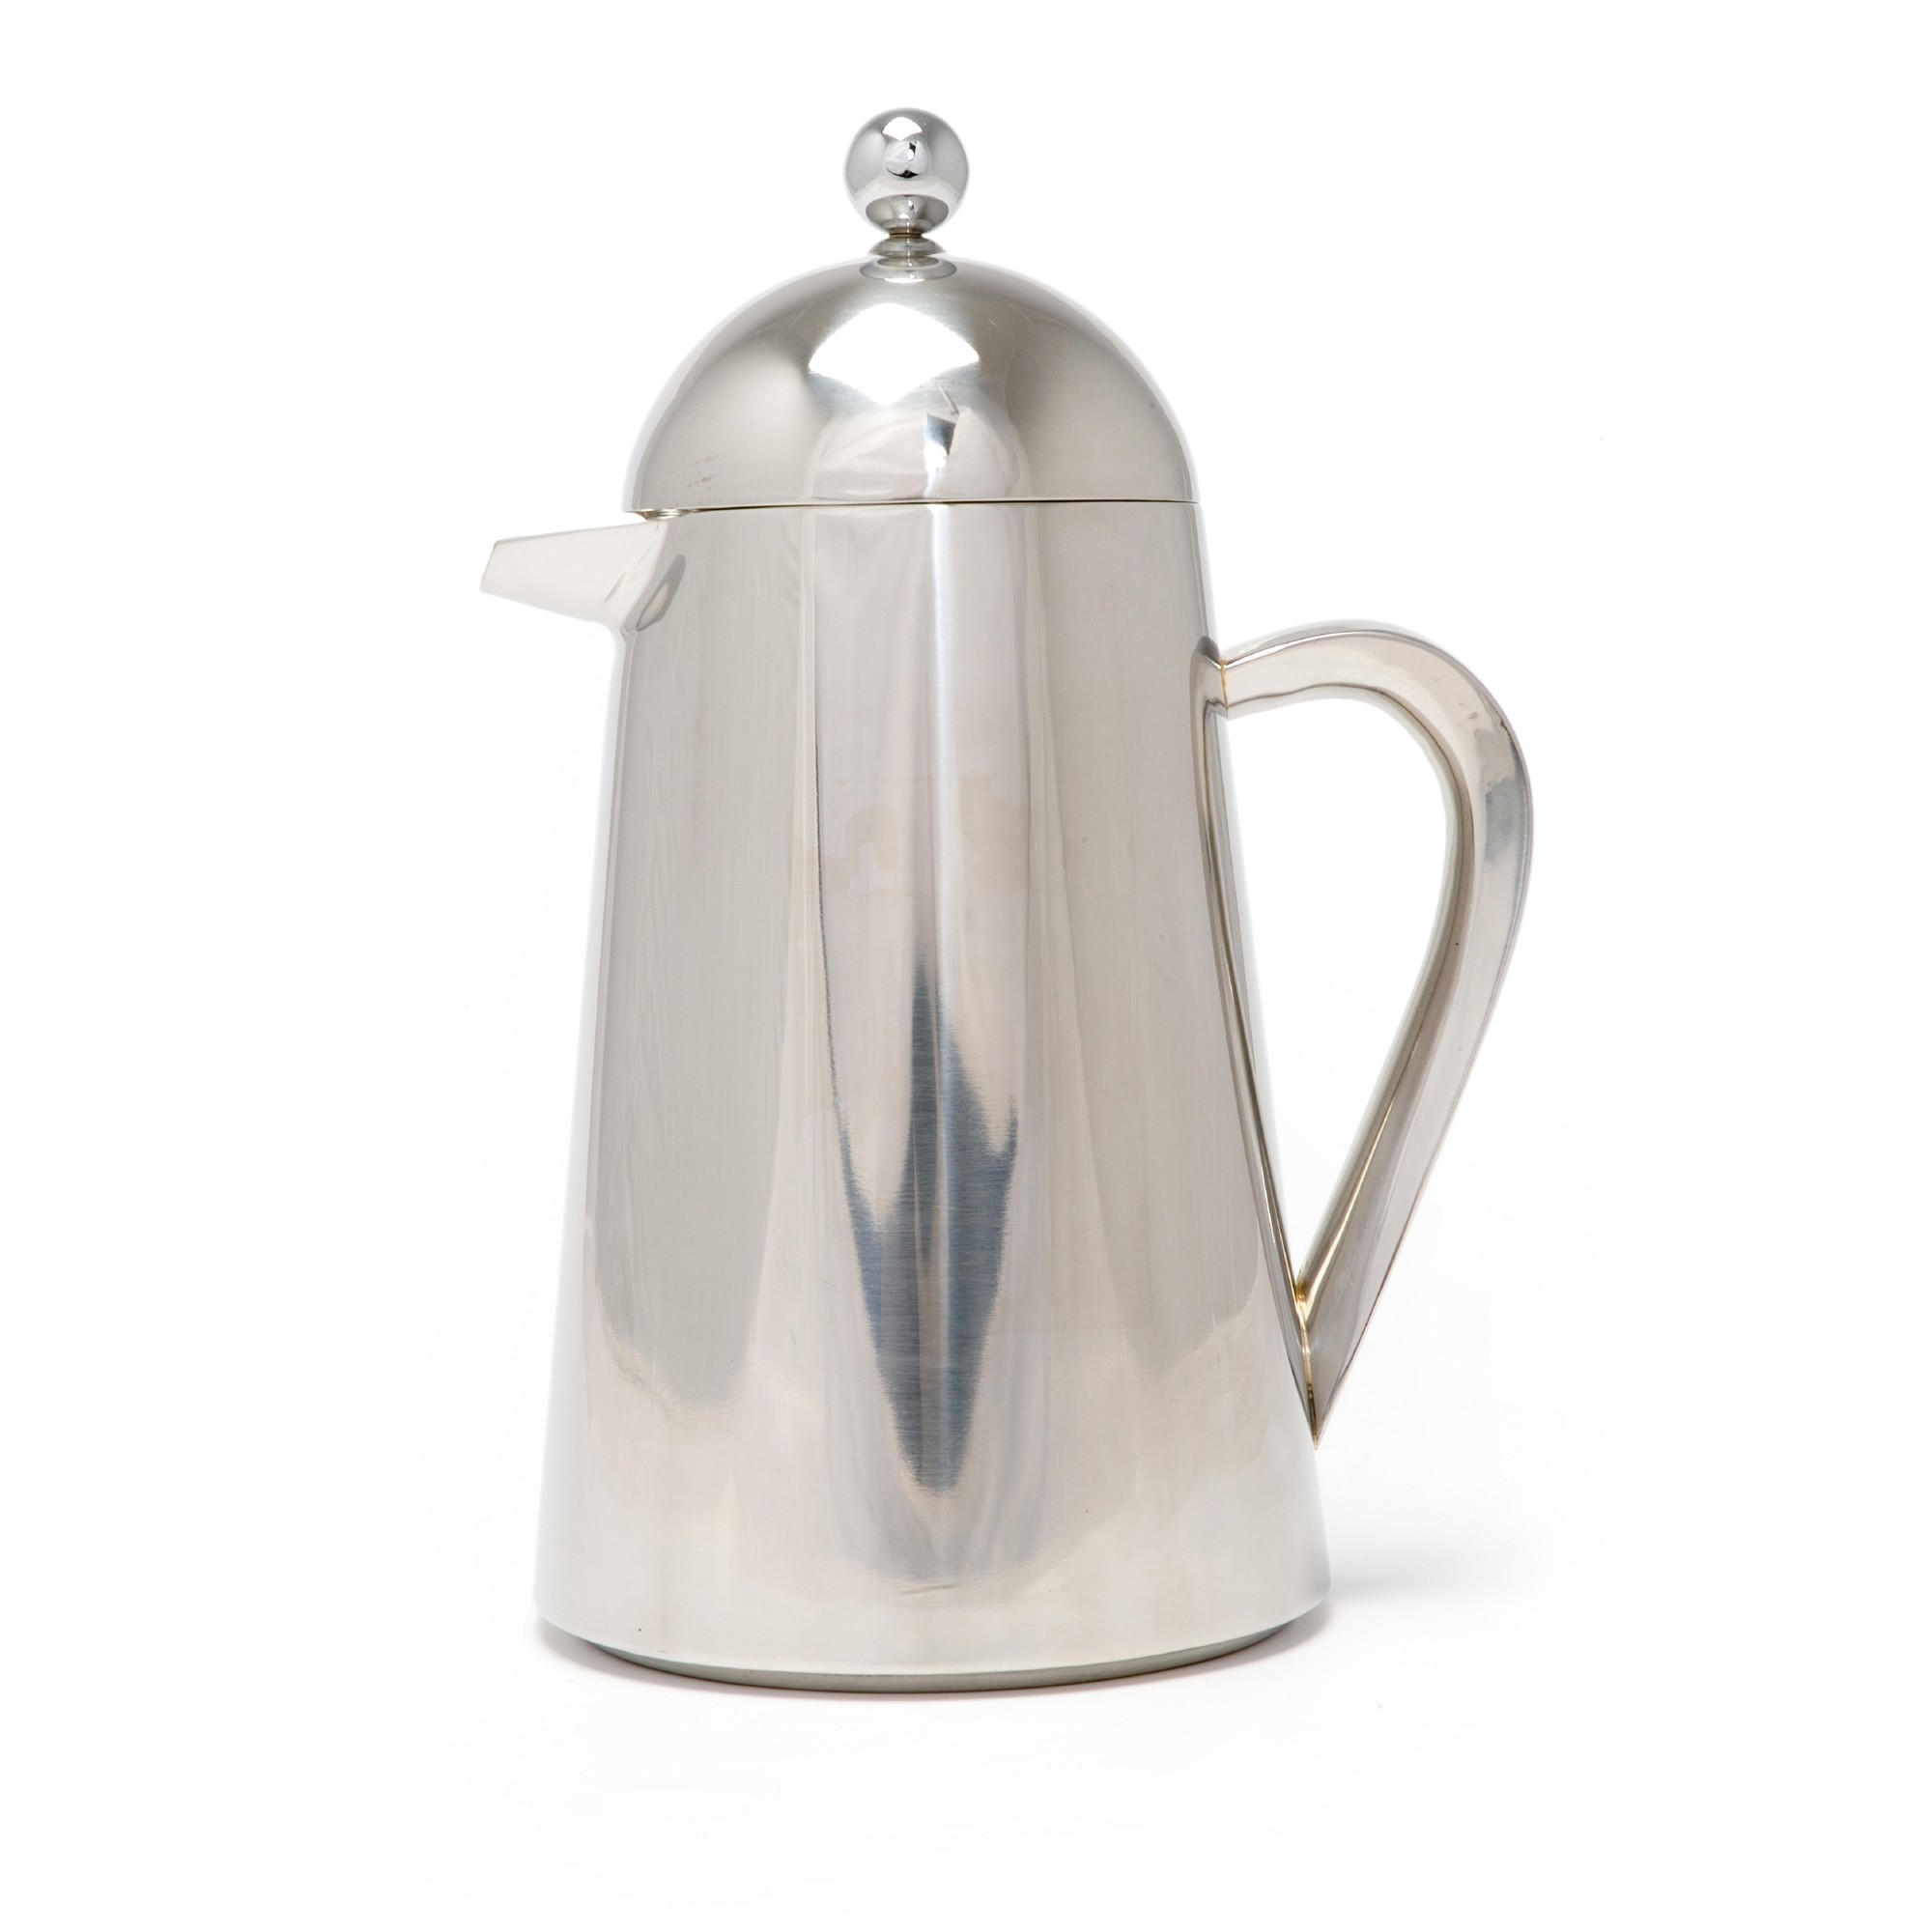 Pfaltzgraff La Cafetiere Thermique 8 Cup French Press Coffee Maker PartNumber: SPM9452356917